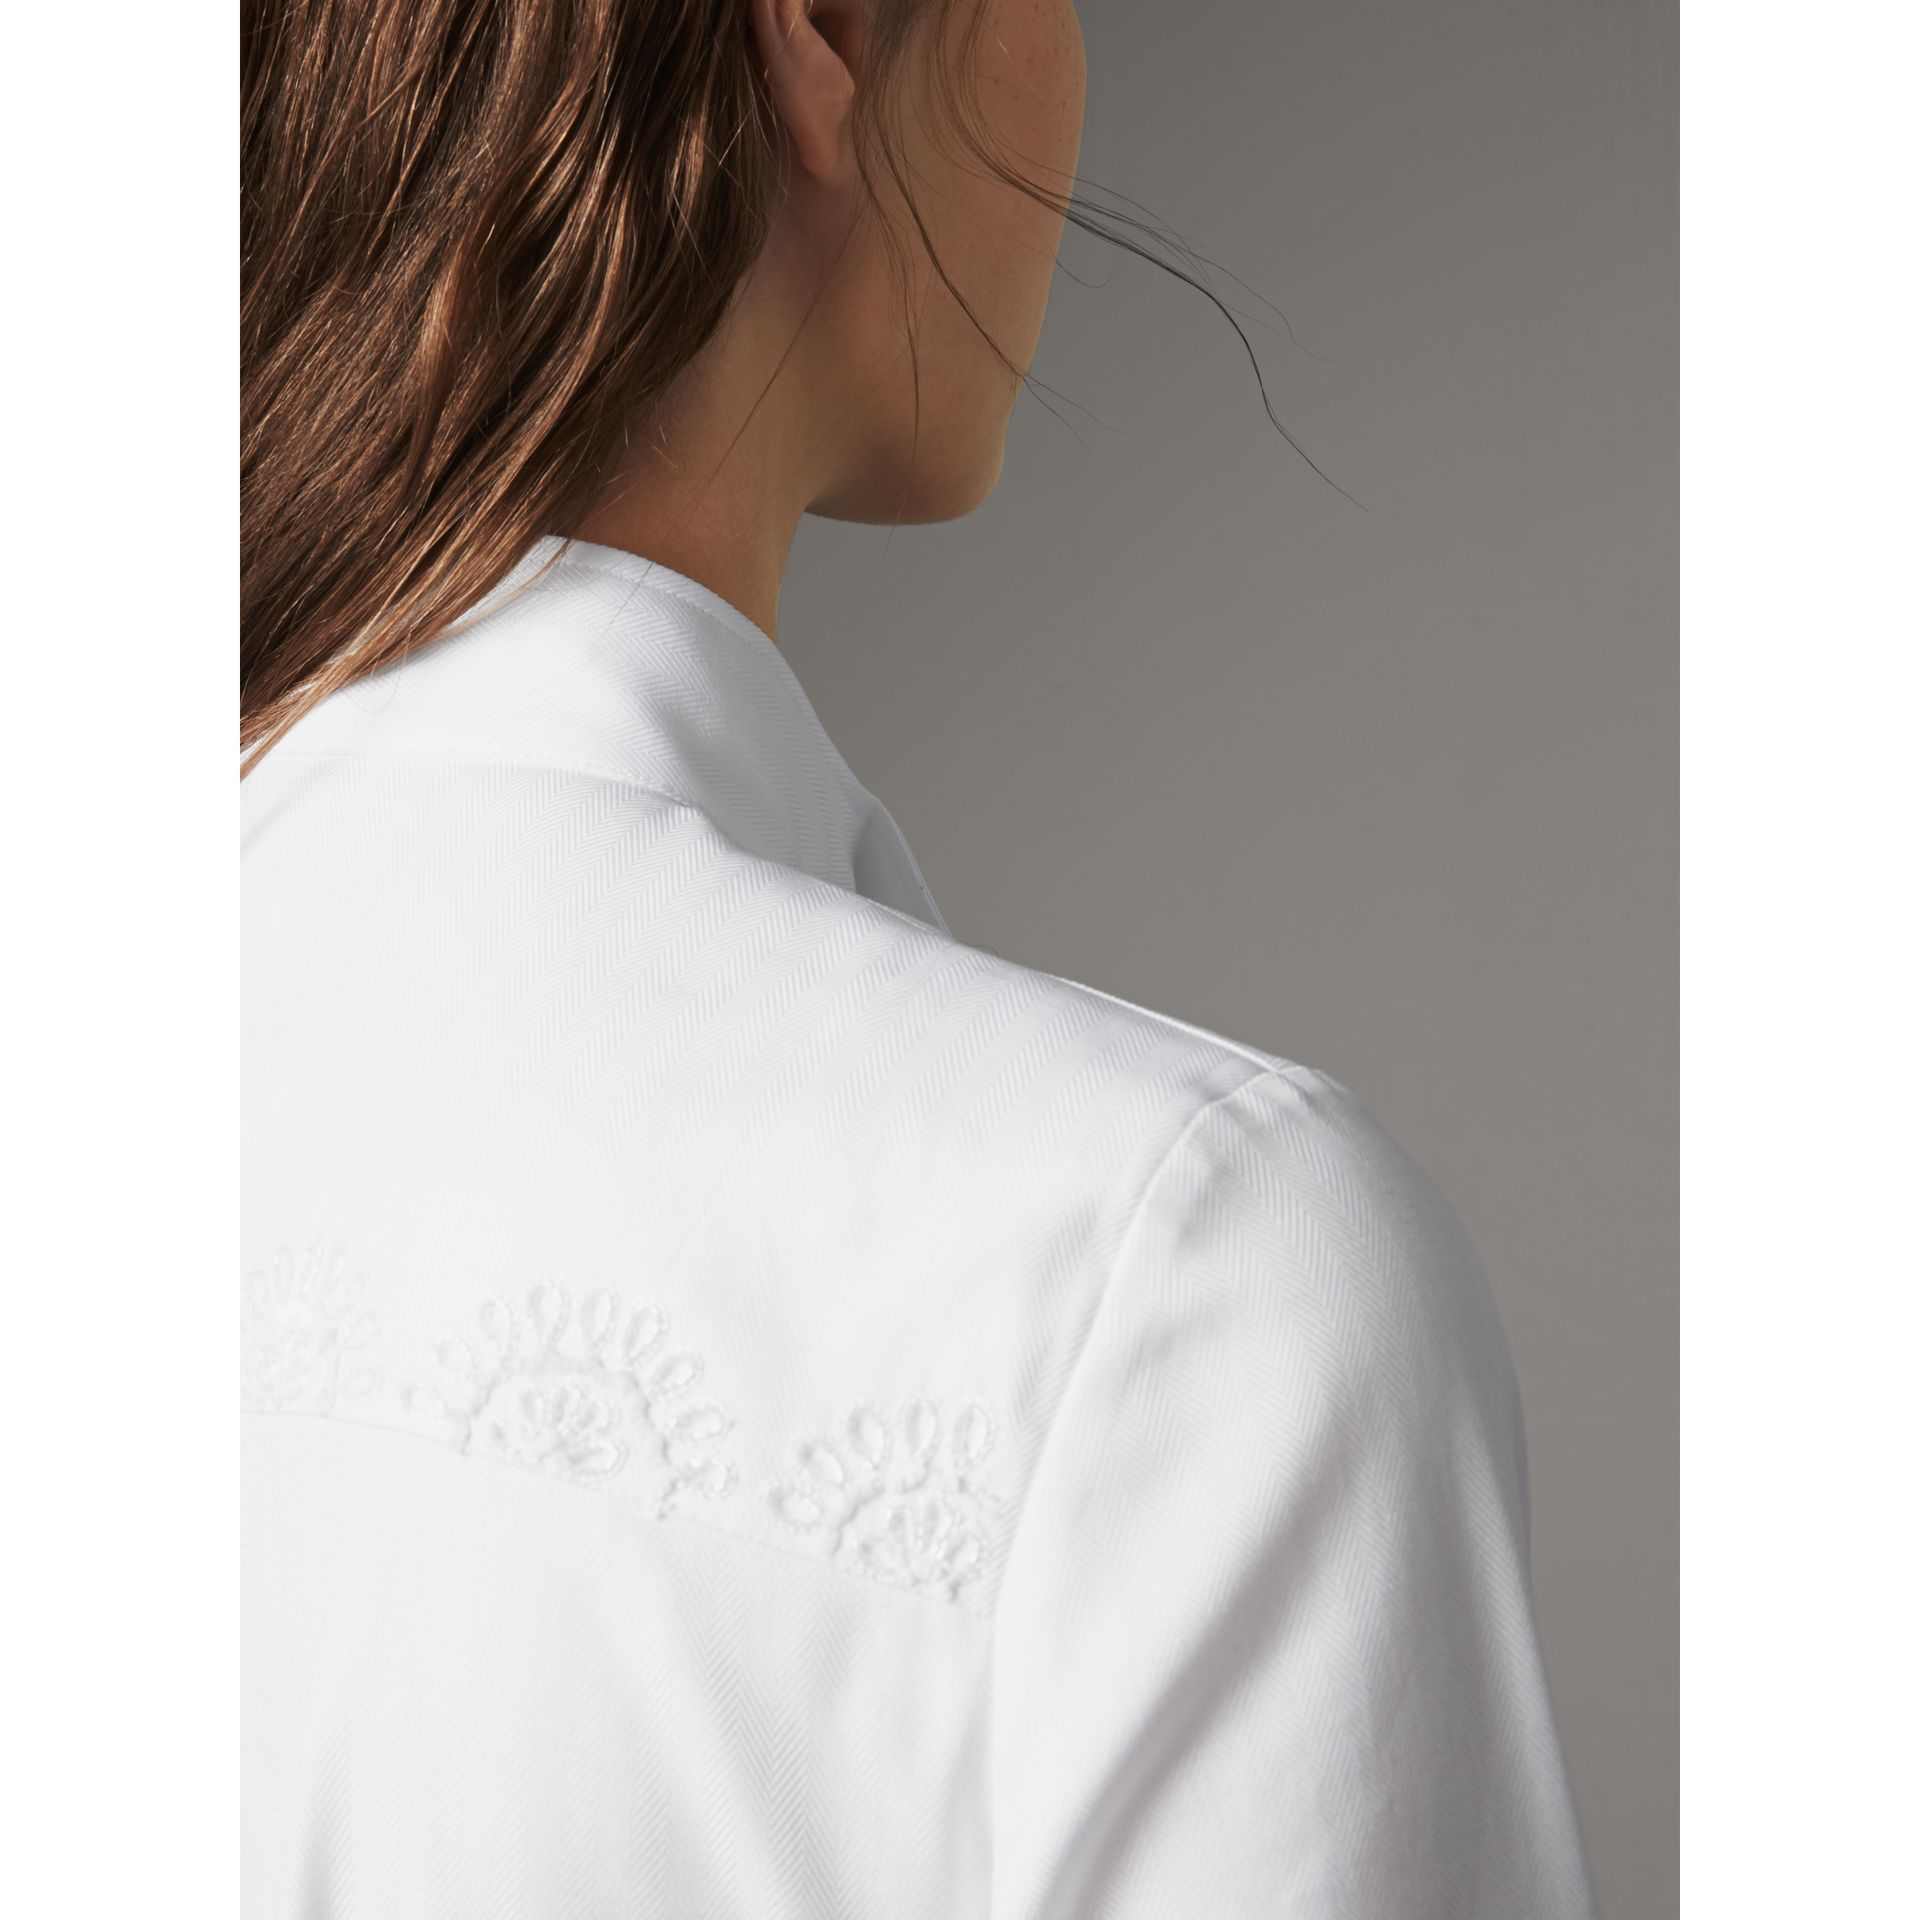 Scalloped Tier Embellished Cotton Shirt in White - Women | Burberry - gallery image 2